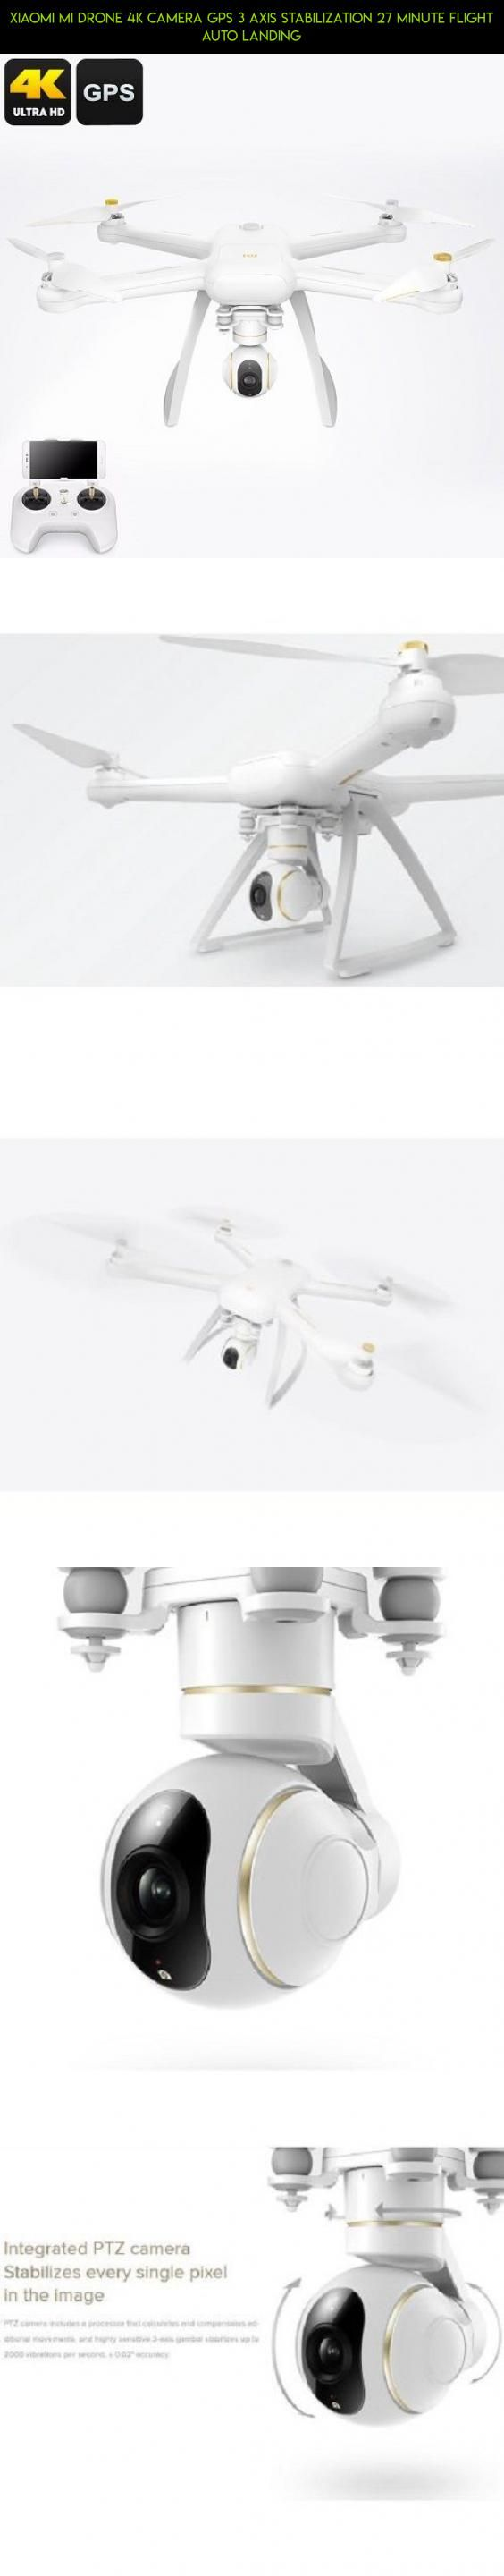 XIAOMI MI DRONE 4K CAMERA GPS 3 AXIS STABILIZATION 27 MINUTE FLIGHT AUTO LANDING #drone #4k #mi #shopping #camera #technology #parts #plans #xiaomi #racing #fpv #gadgets #tech #kit #products #drone